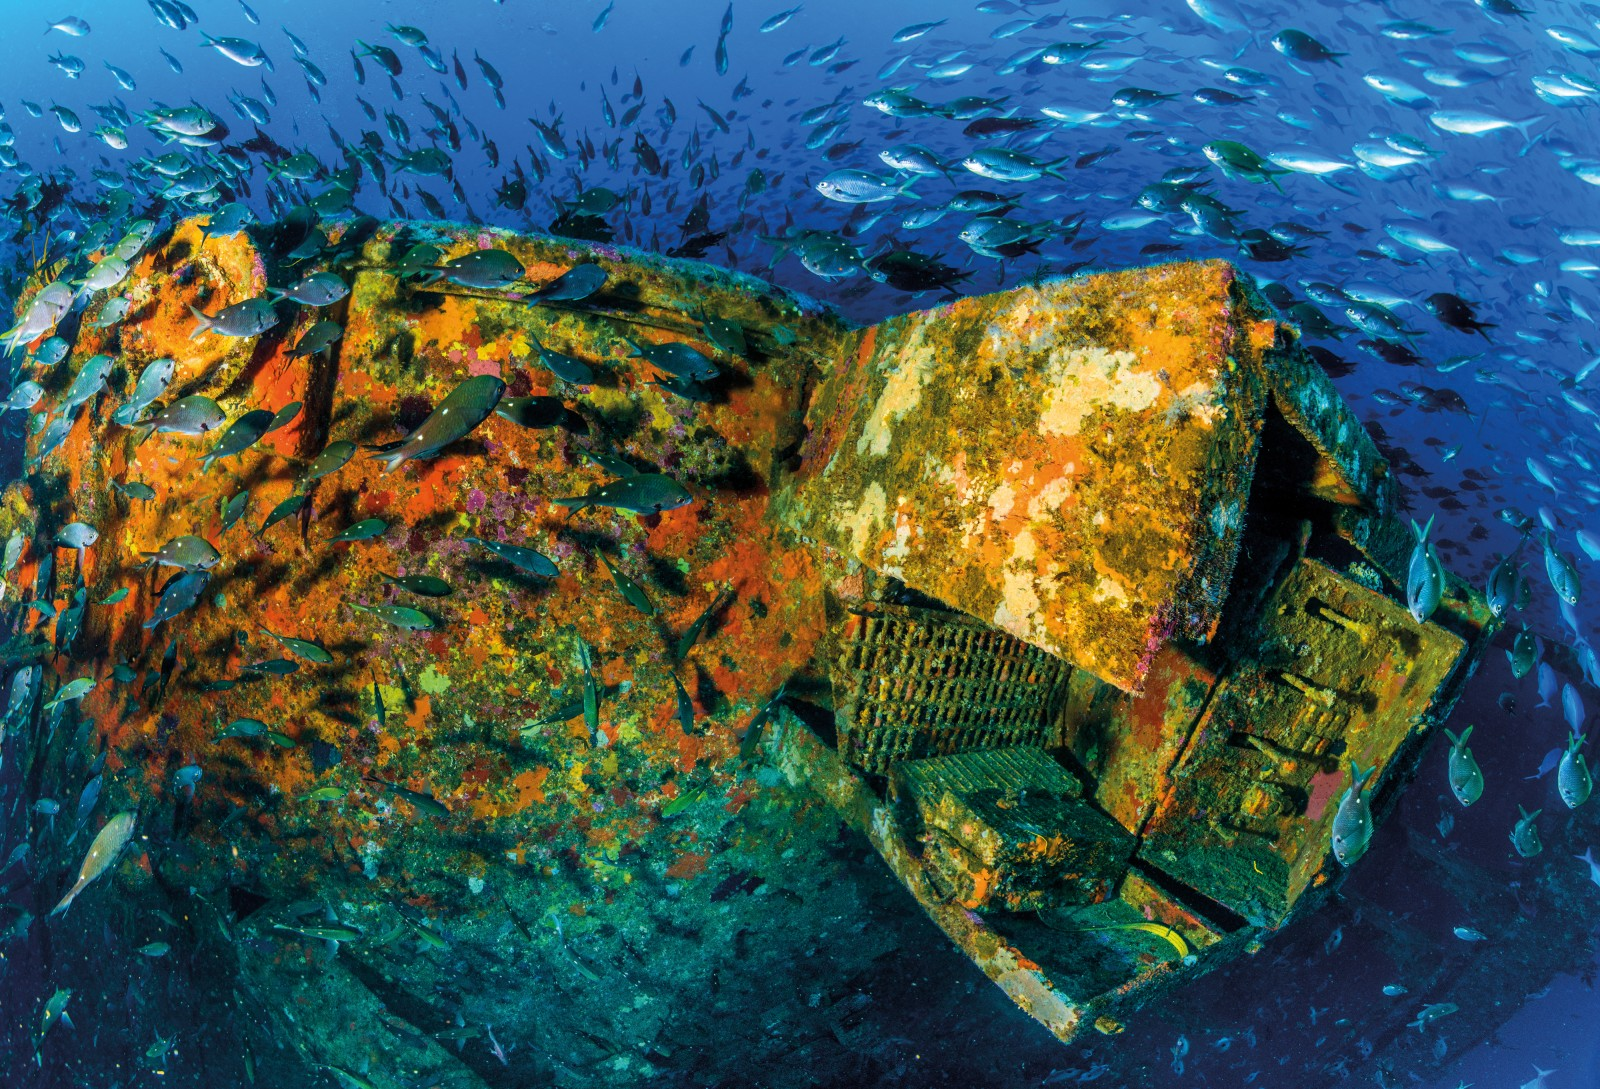 The stern section of the wreck sits in about 56 metres of water, with the top in 33 metres of water, covering about two per cent of the reef area. It's now festooned with colourful soft corals and algae, and swarming with demoiselles and larger pelagic fish such as kingfish. This image is a composite of six images taken with a very wide angle lens and stitched together to create a panoramic view.